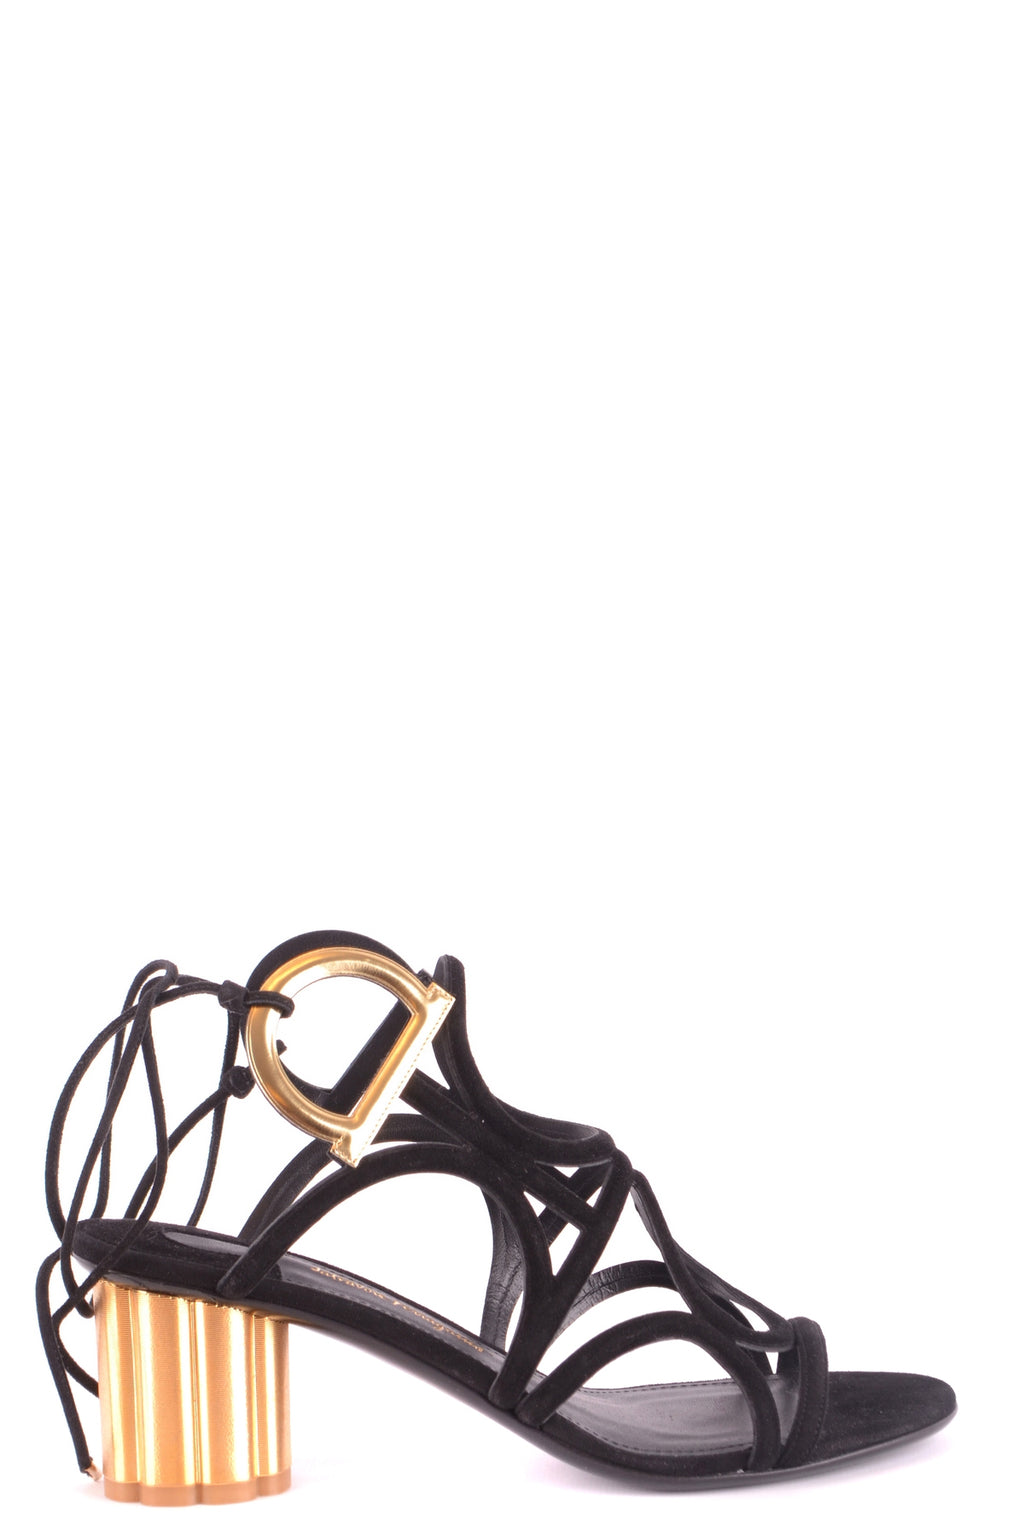 Shoes Salvatore Ferragamo heels sandals - KATANA FASHION BOUTIQUE